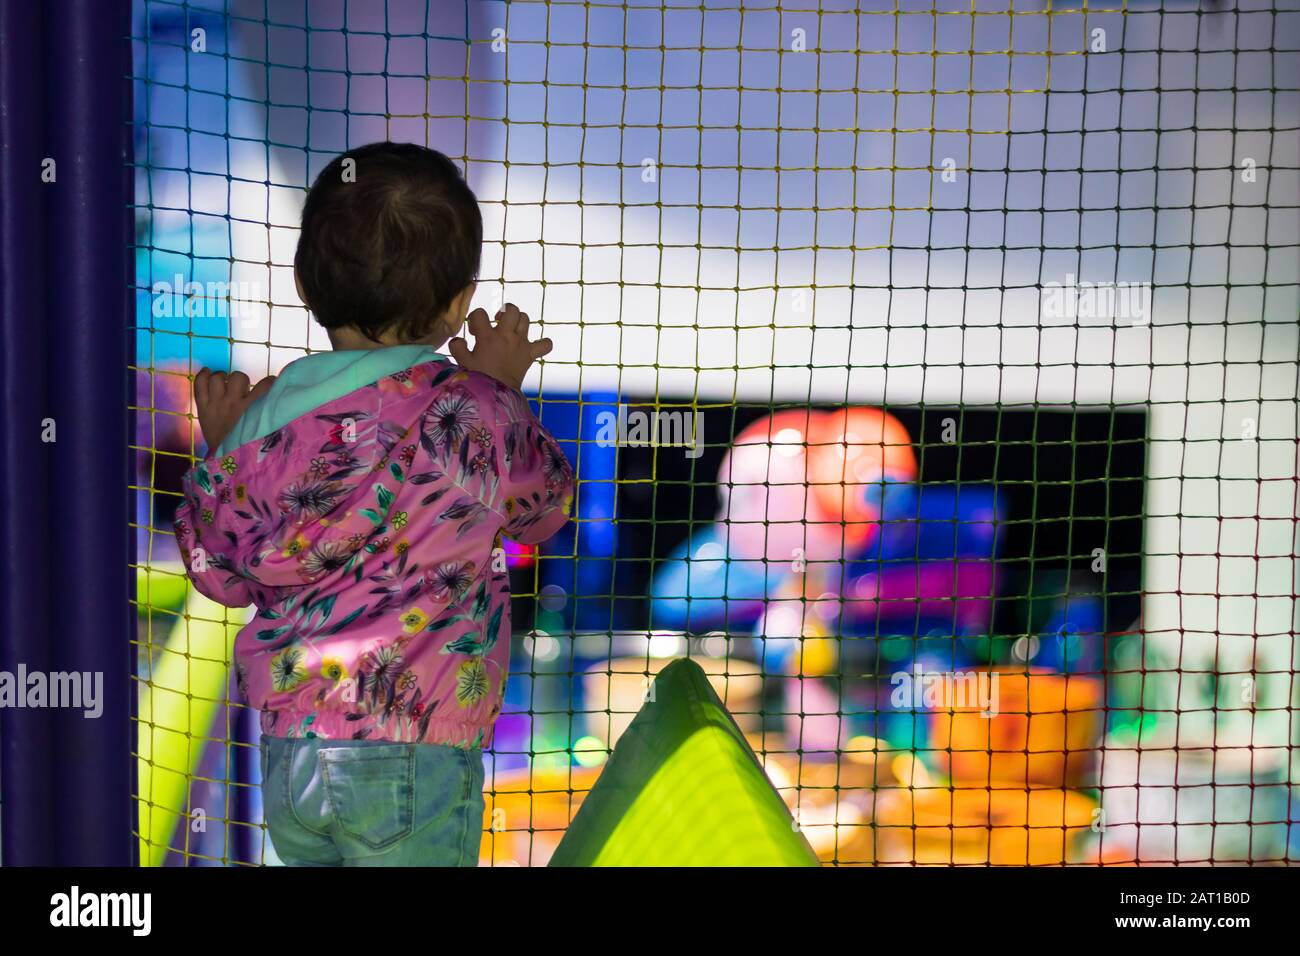 a cute little girl in an indoor playground in a shopping centre in Dubai, United Arab Emirates. Stock Photo